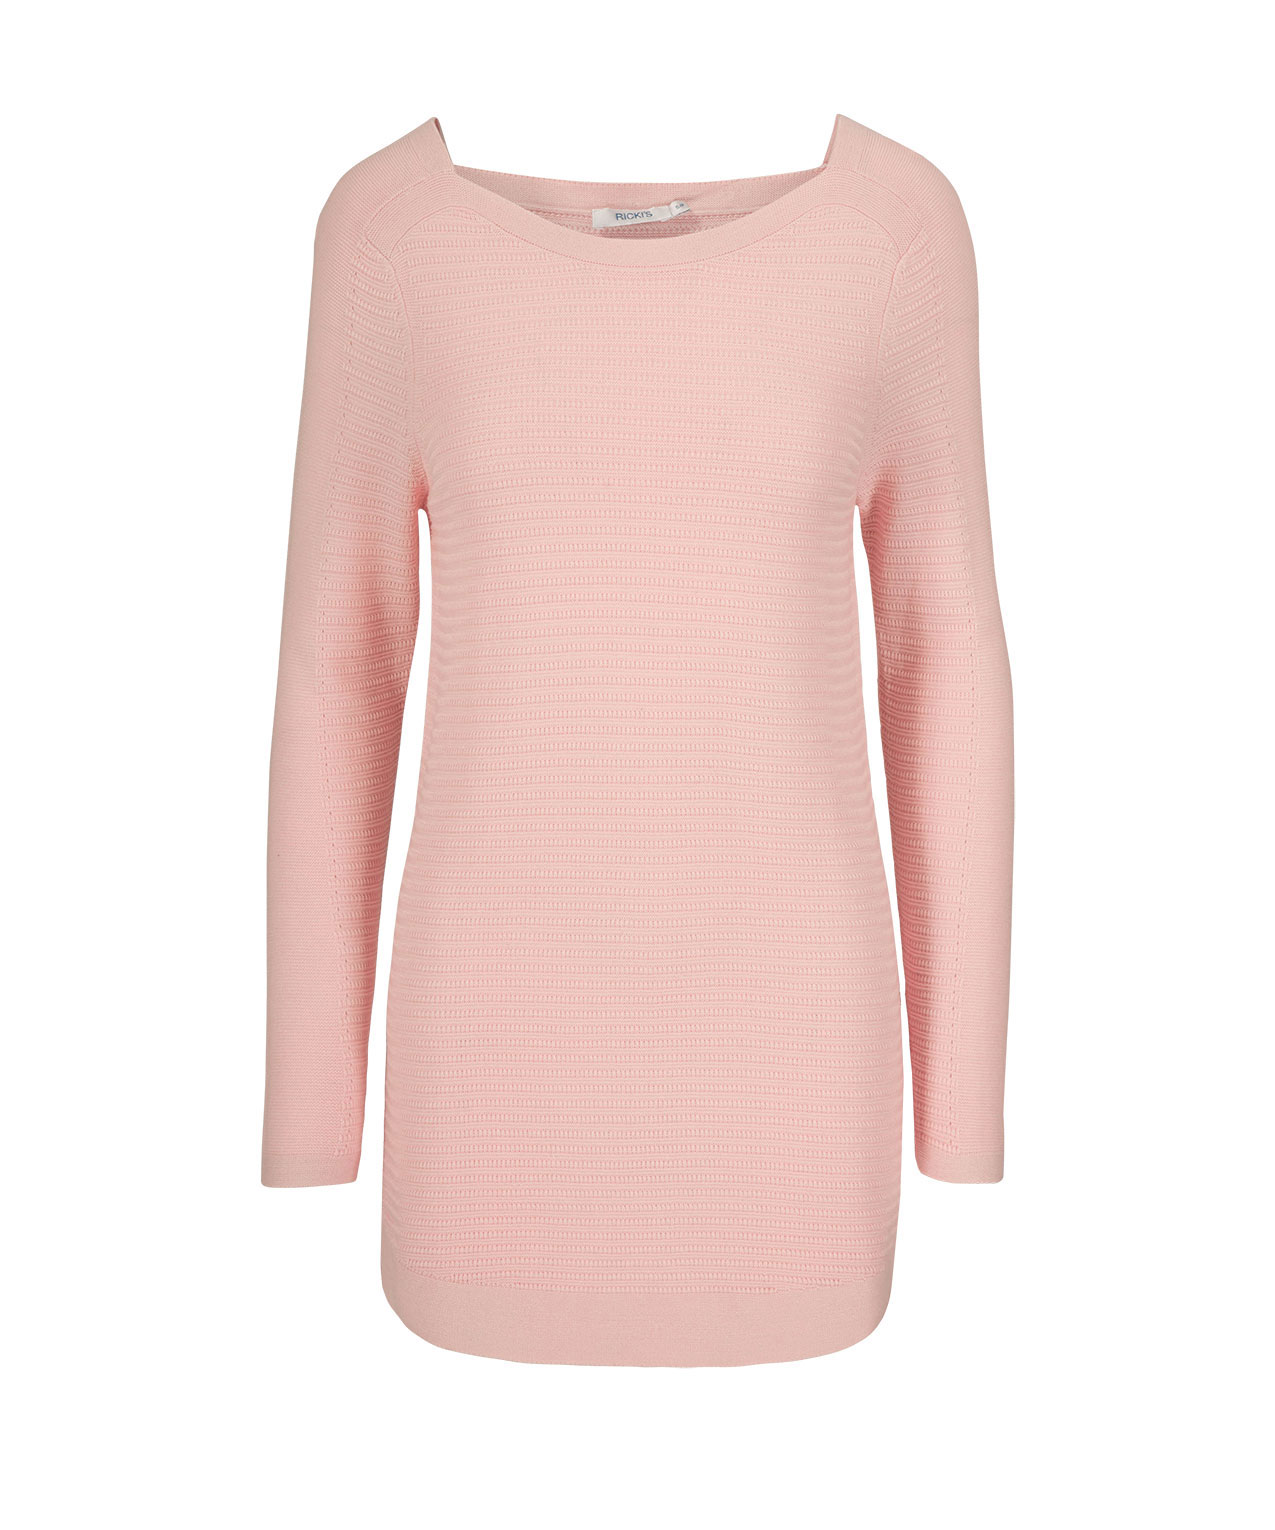 Square Neck Ribbed Pullover Sweater Rickis Basic Pull Over Soft Peach Hi Res